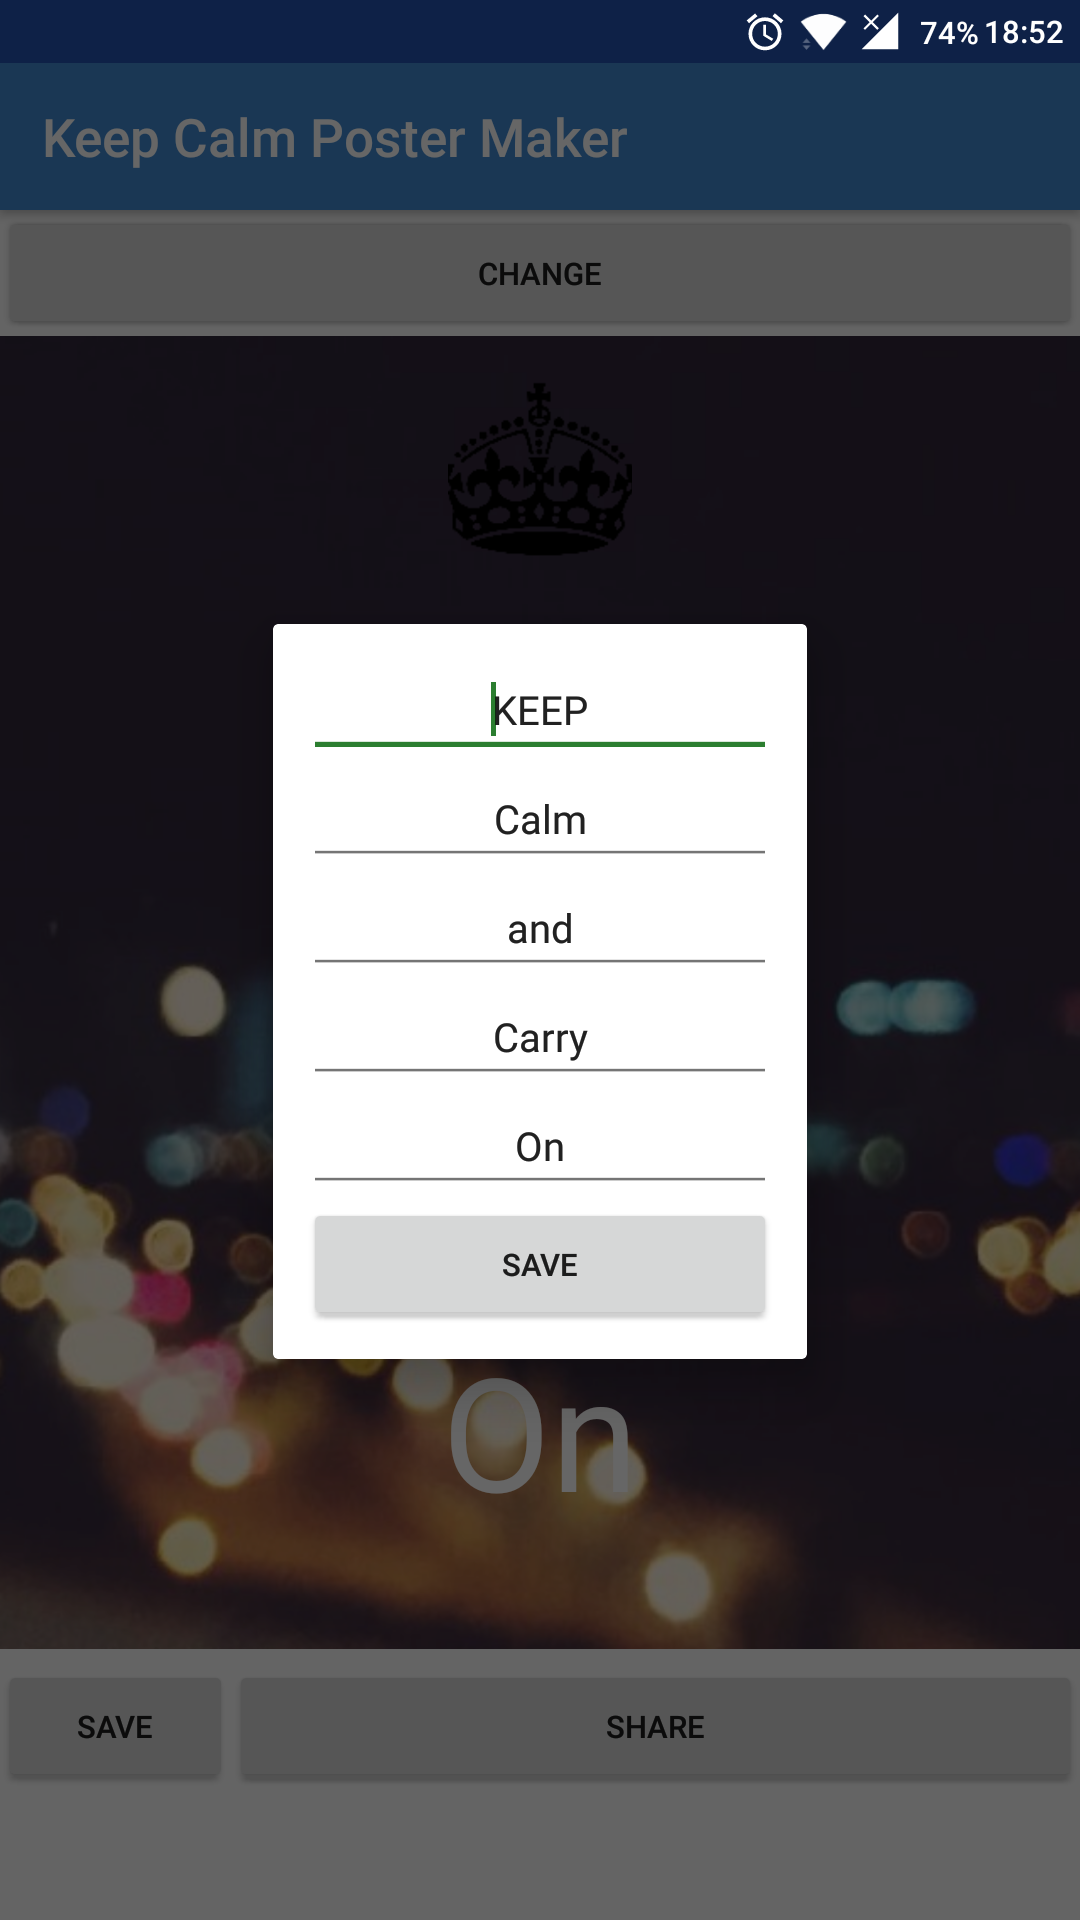 amazon com keep calm poster maker appstore for android